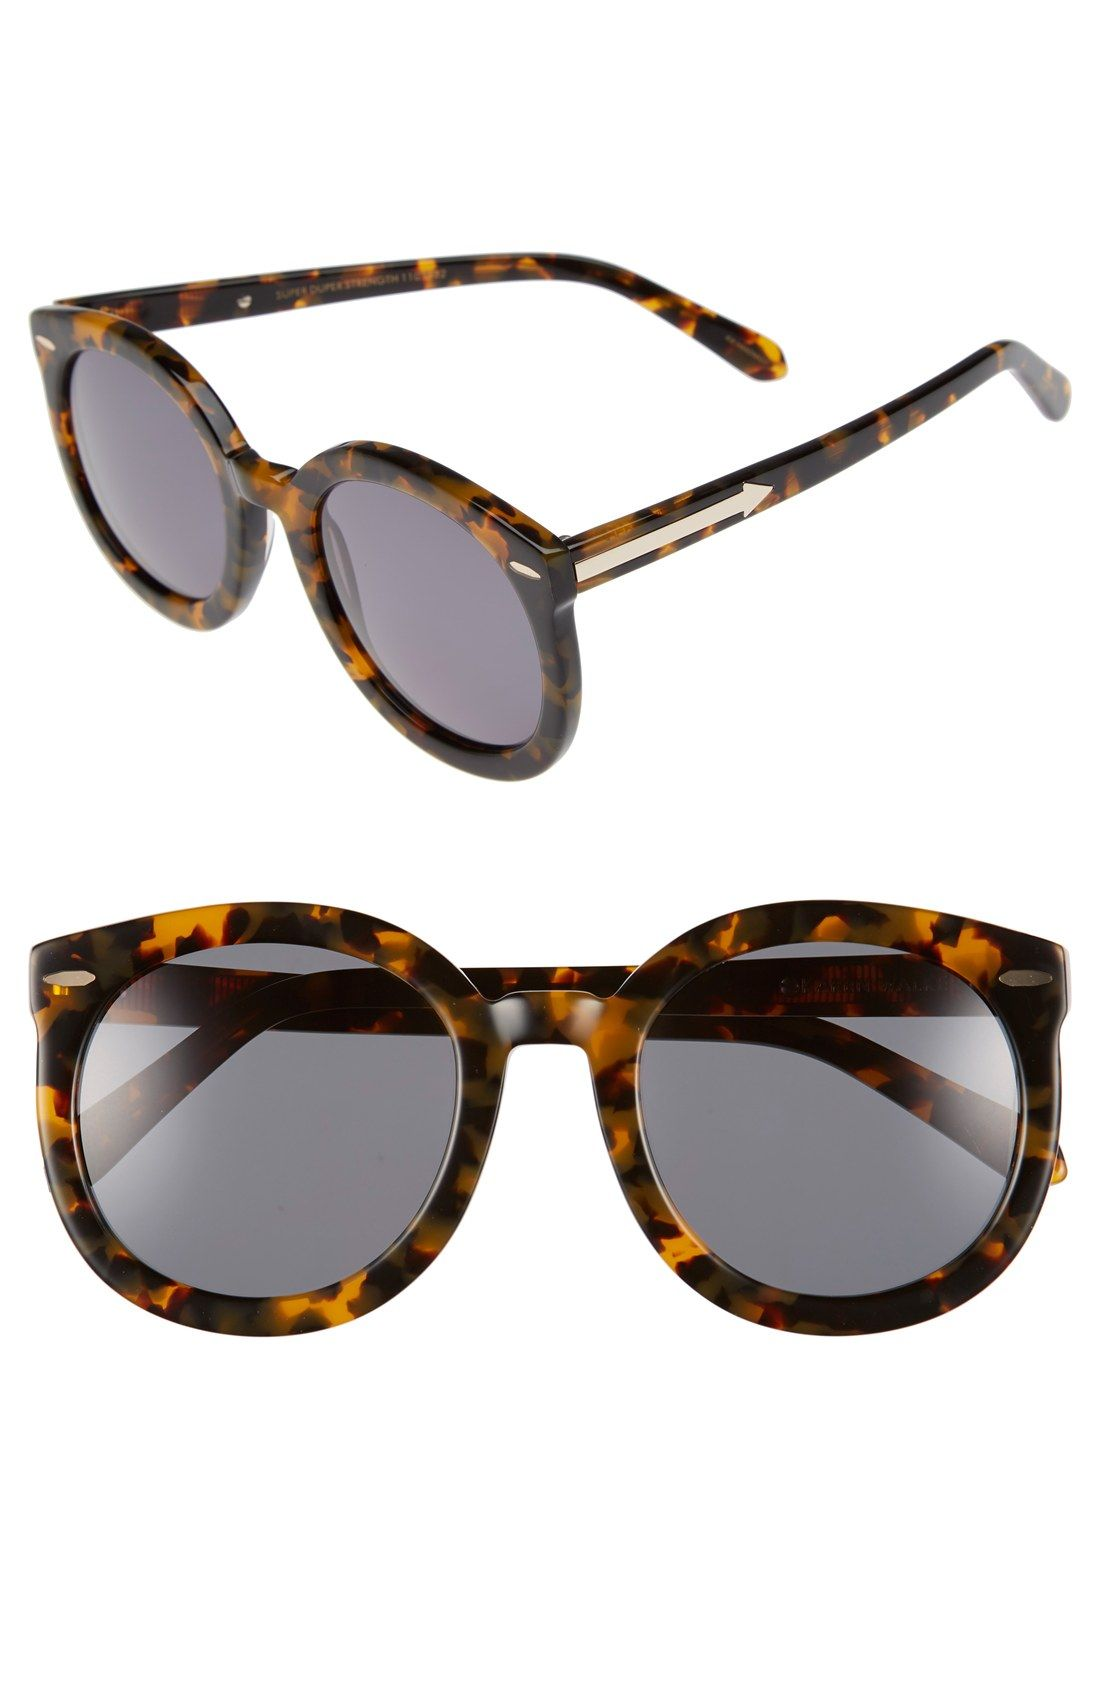 95d556362 Karen Walker 'Super Duper Strength' 55mm Retro Sunglasses | Teen ...